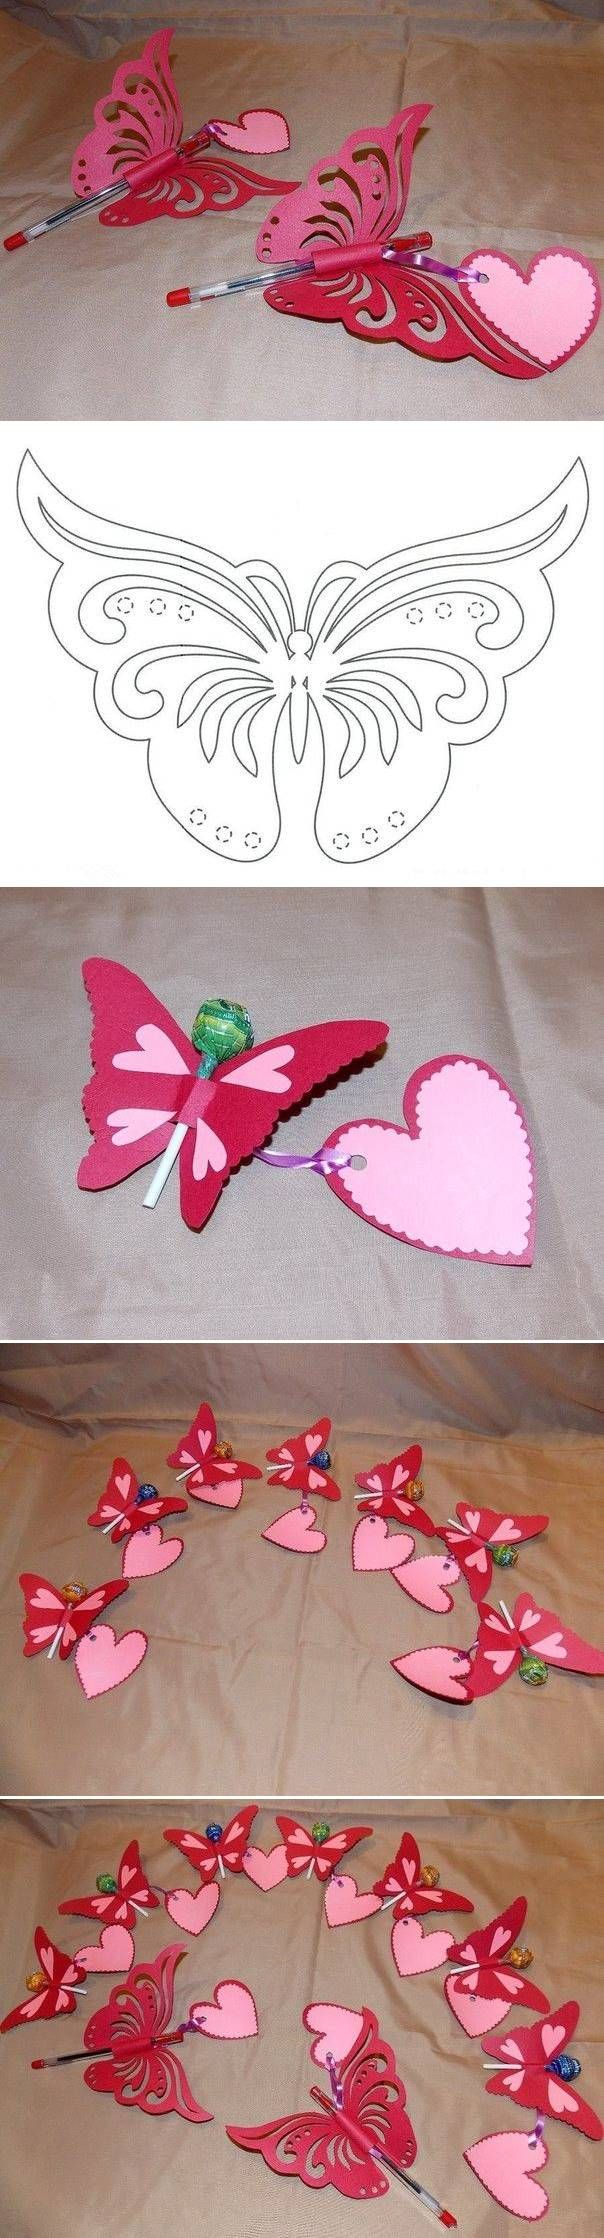 Creative Ideas – DIY Pretty Kirigami Butterfly Postcard from Template #craft #butterfly More